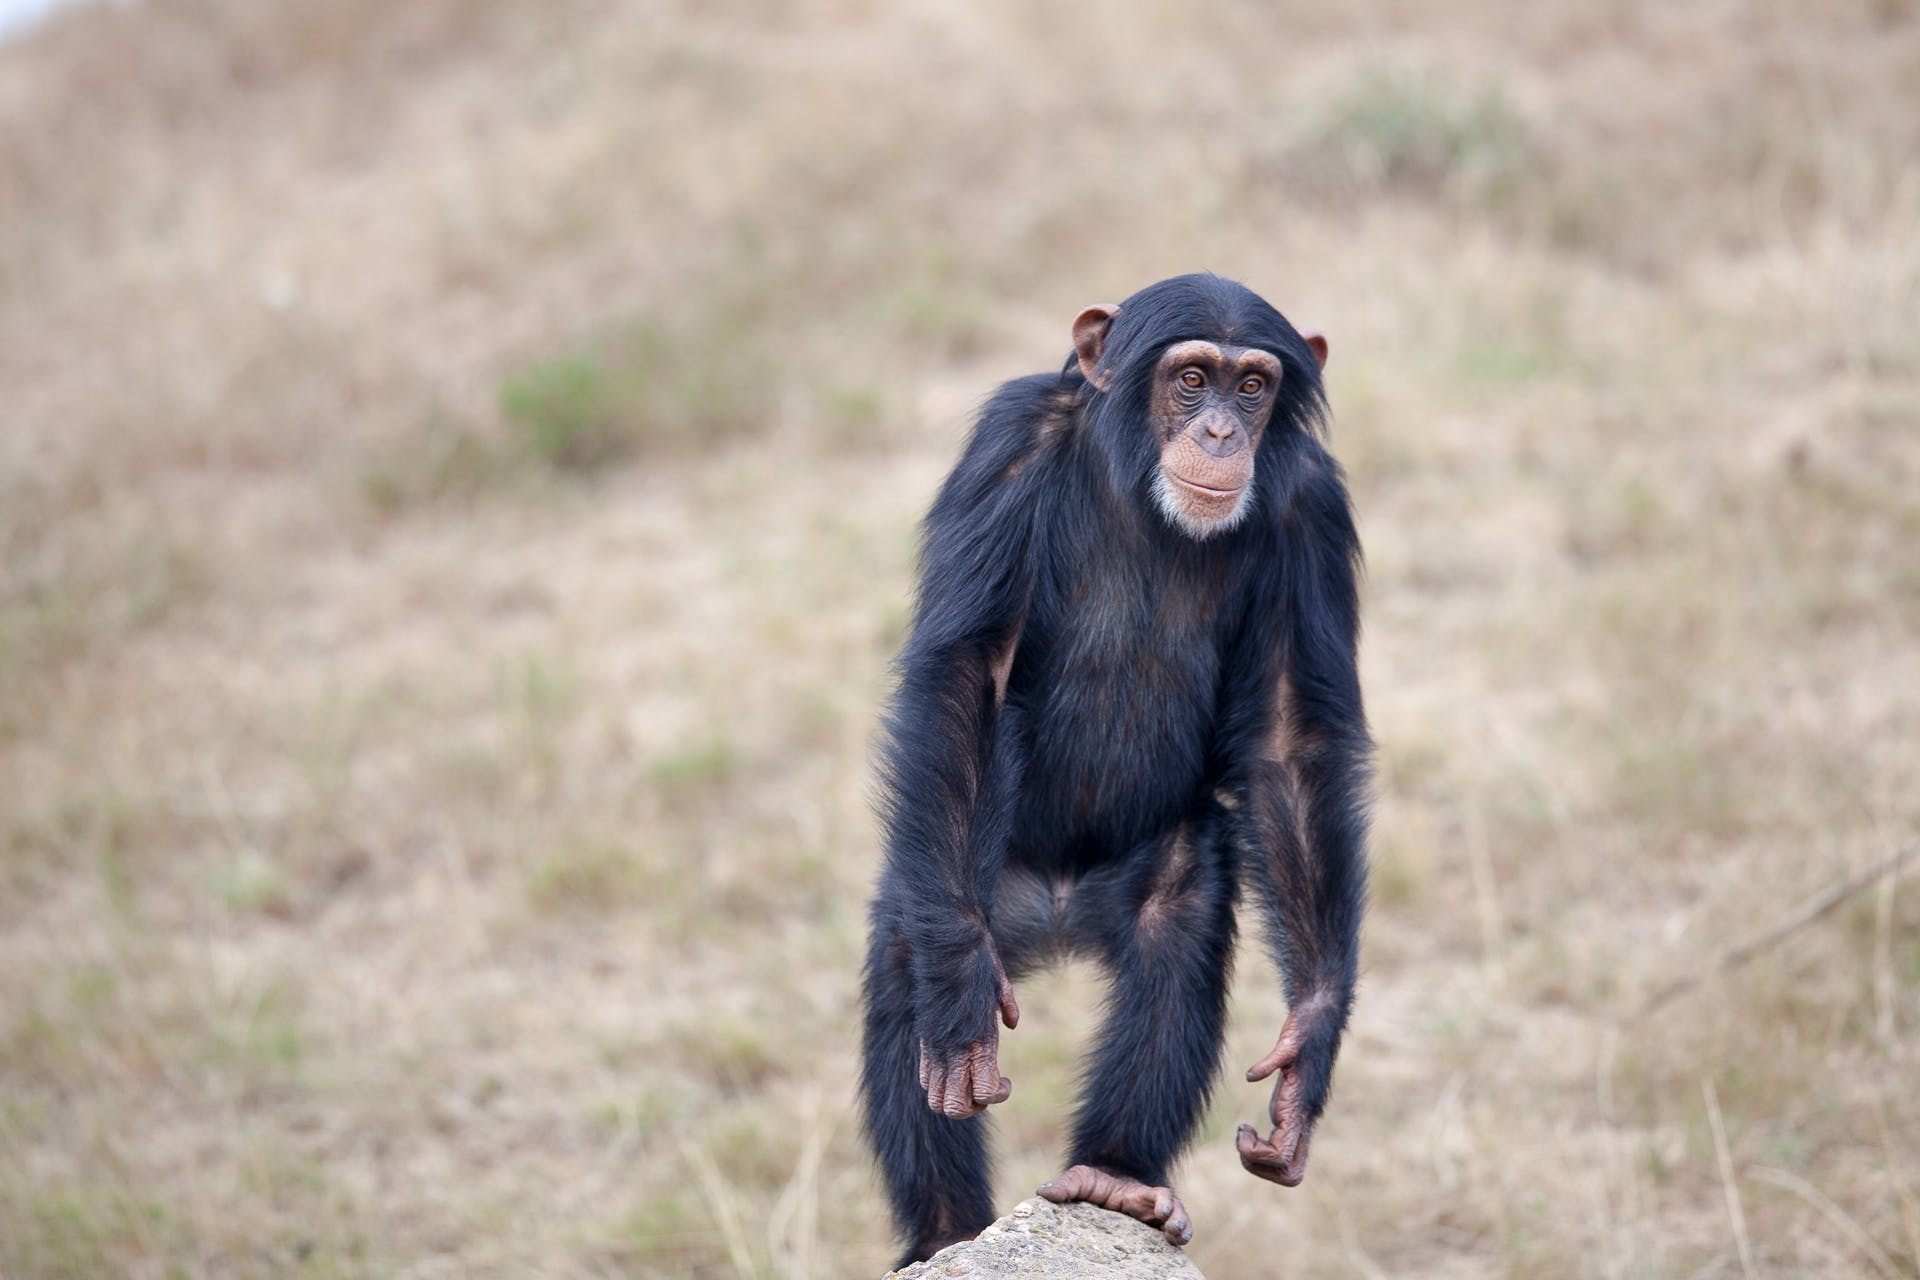 Standing Black and Brown Primate Surrounded by Green Grass Fields